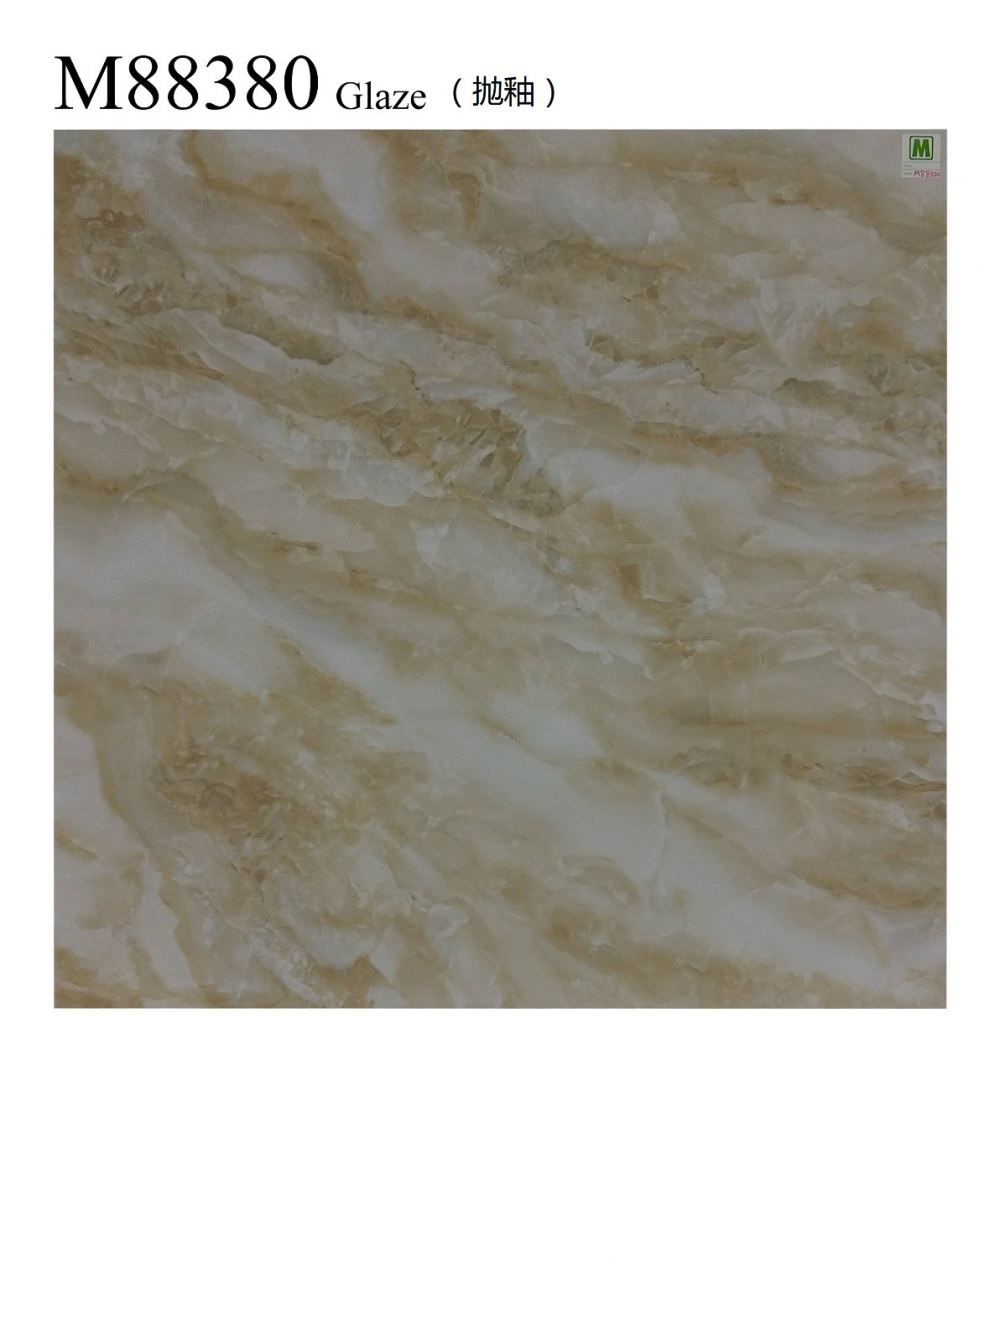 M88380 FLOOR TILES TILE Supplier, Suppliers, Supply, Supplies ...